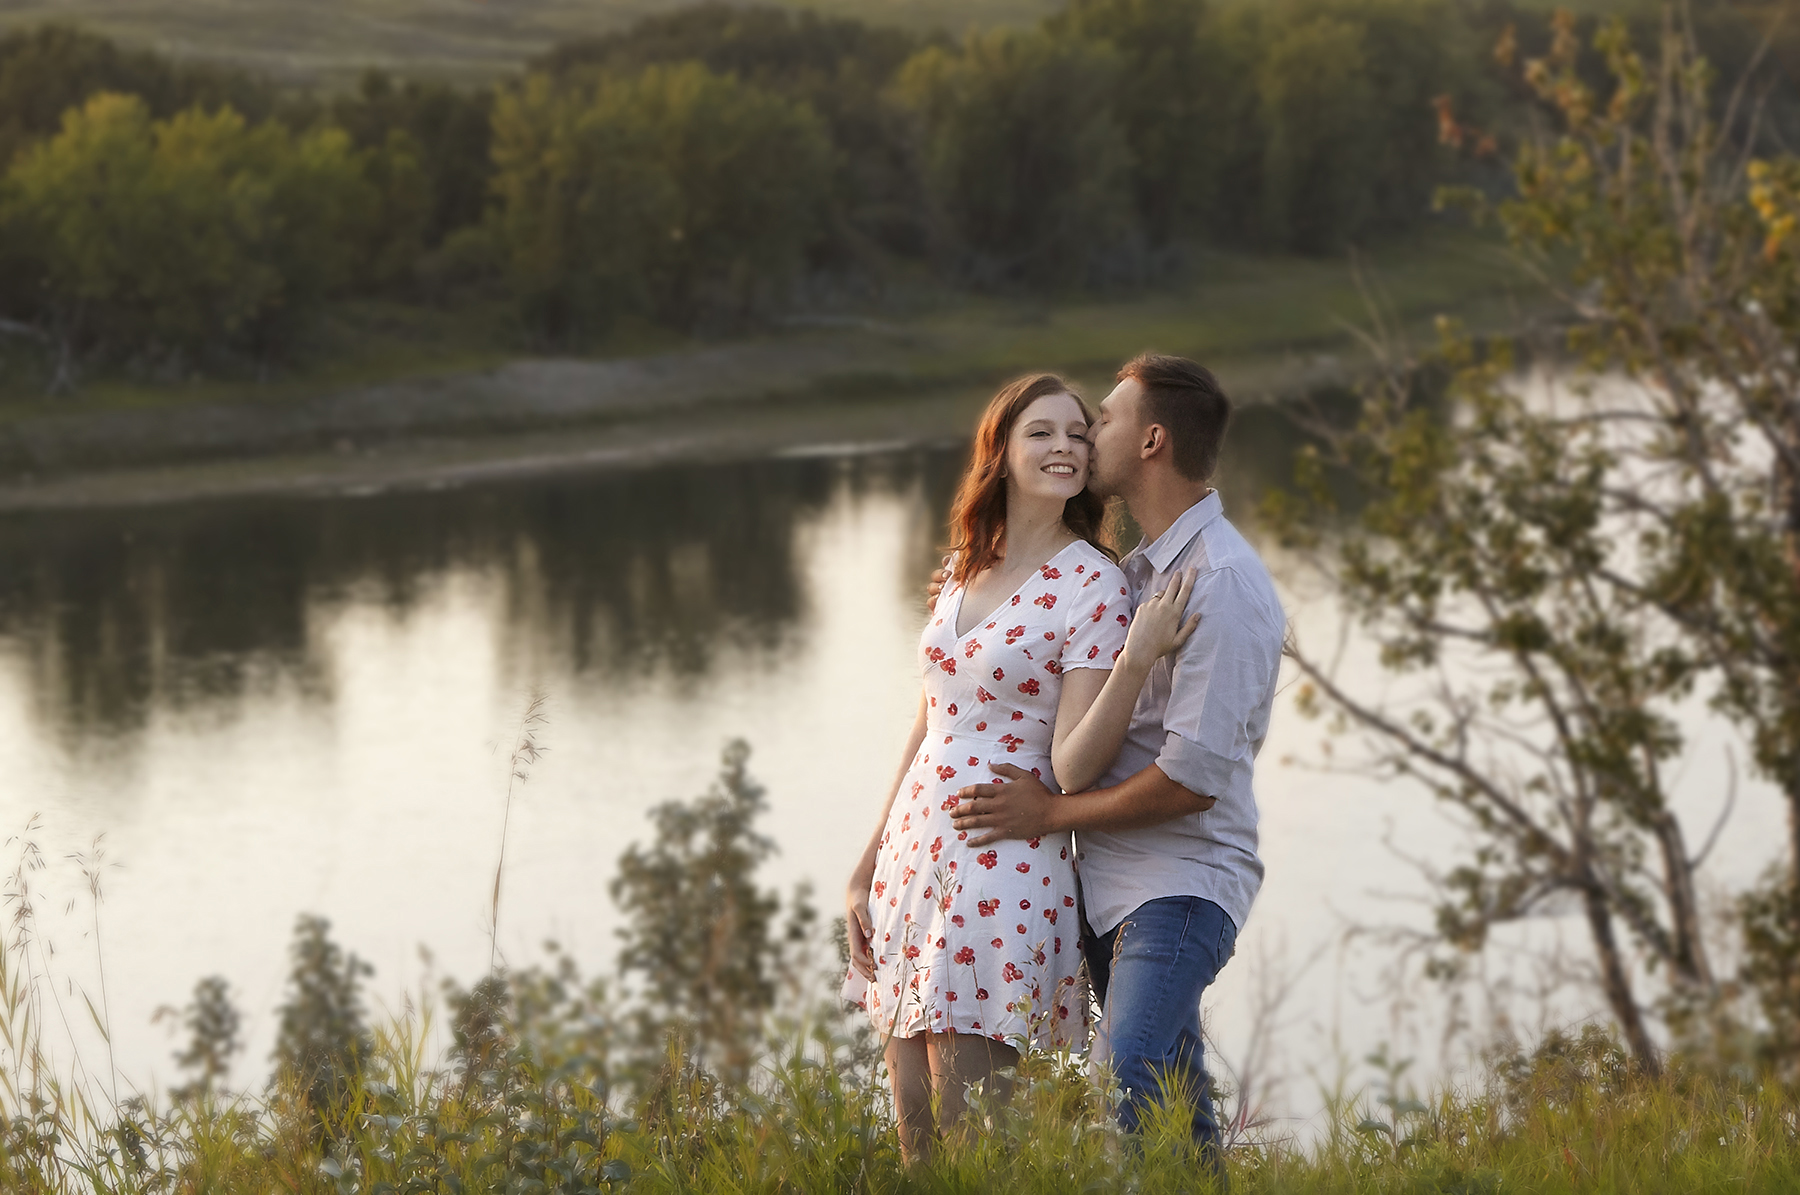 cindy-moleski-professional-portrait-couples-romantic-photographer-saskatoon-saskatchewan-Andrew and Layla.jpg